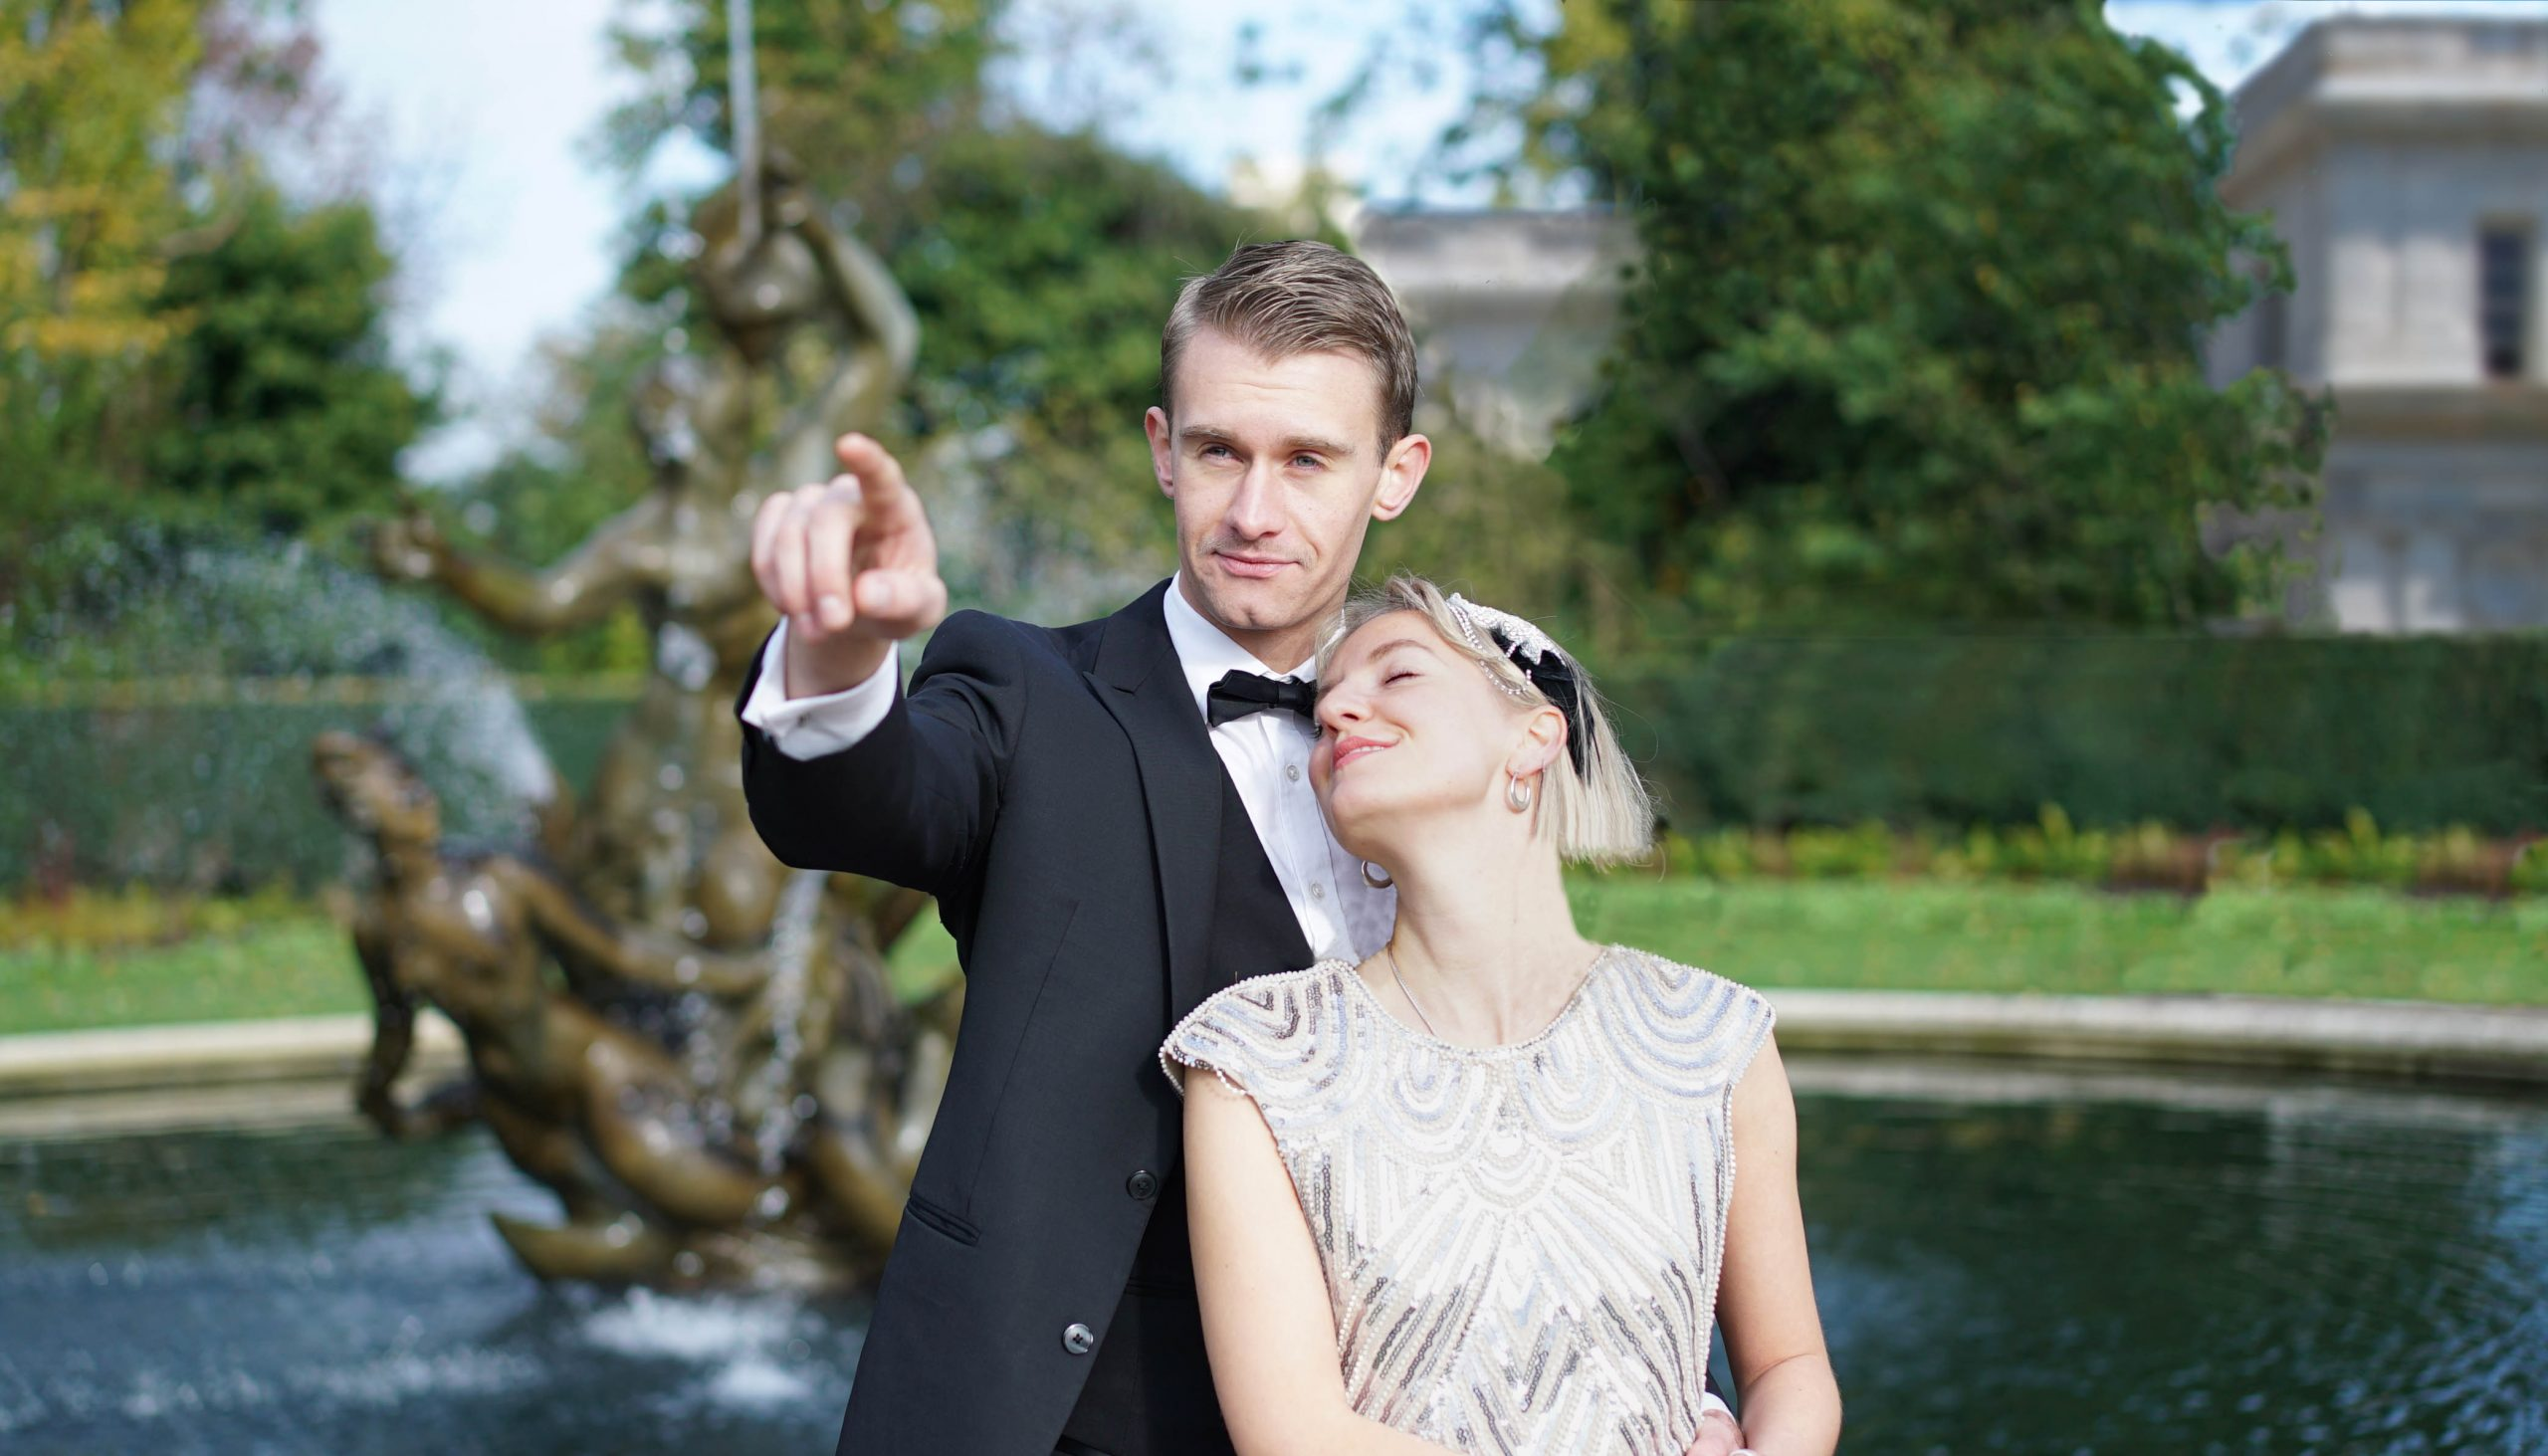 A woman in 1920's clothing leans back against a man in a tuxedo. They are both in a park